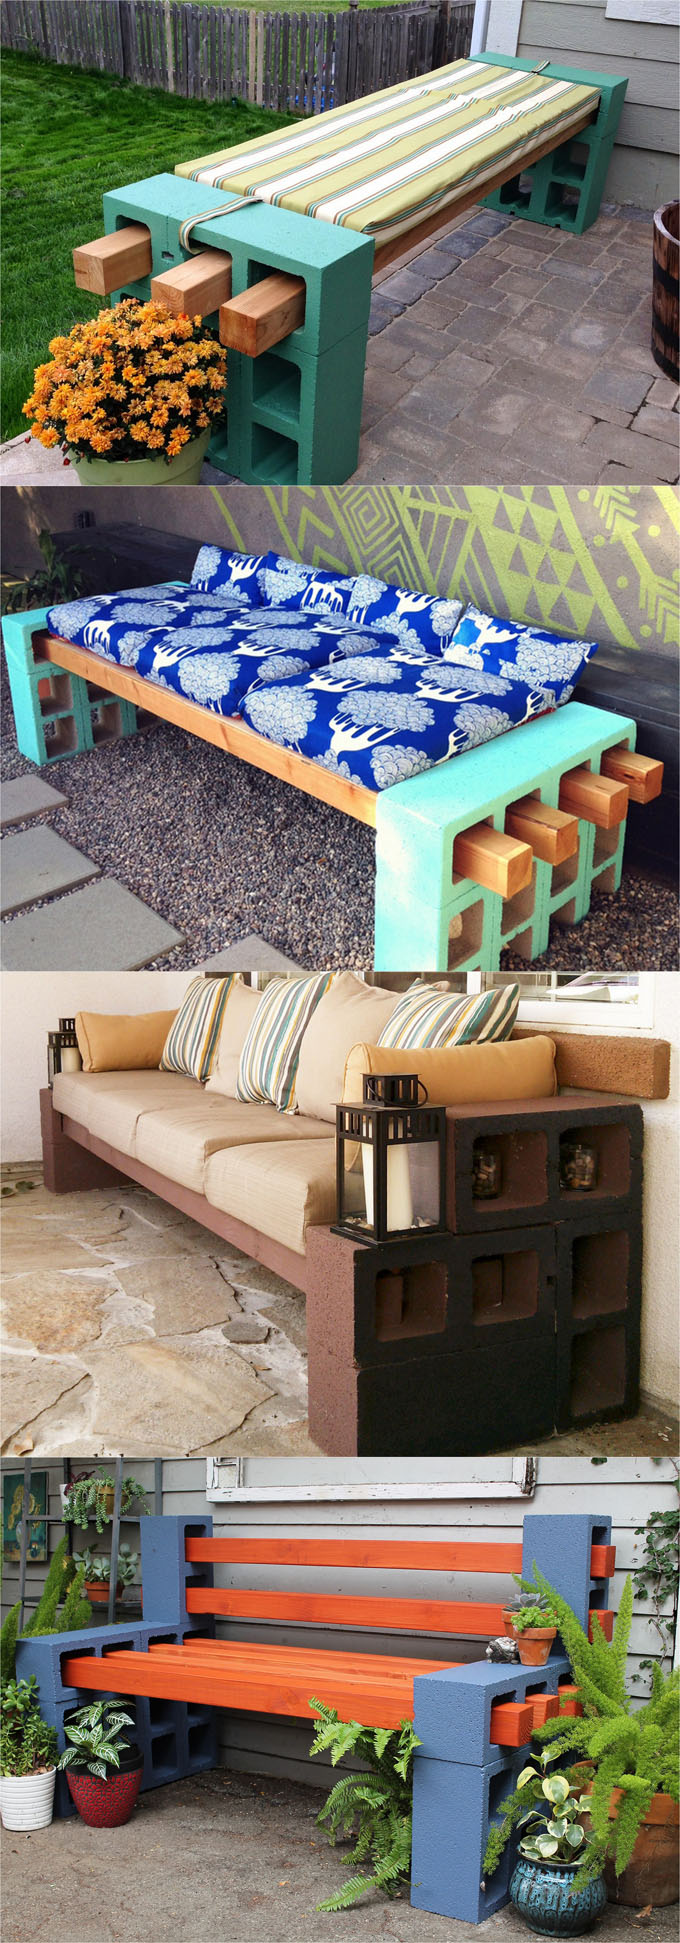 21 beautiful DIY benches for every room. Great tutorials on how to build benches easily out of wood, concrete blocks, or even old